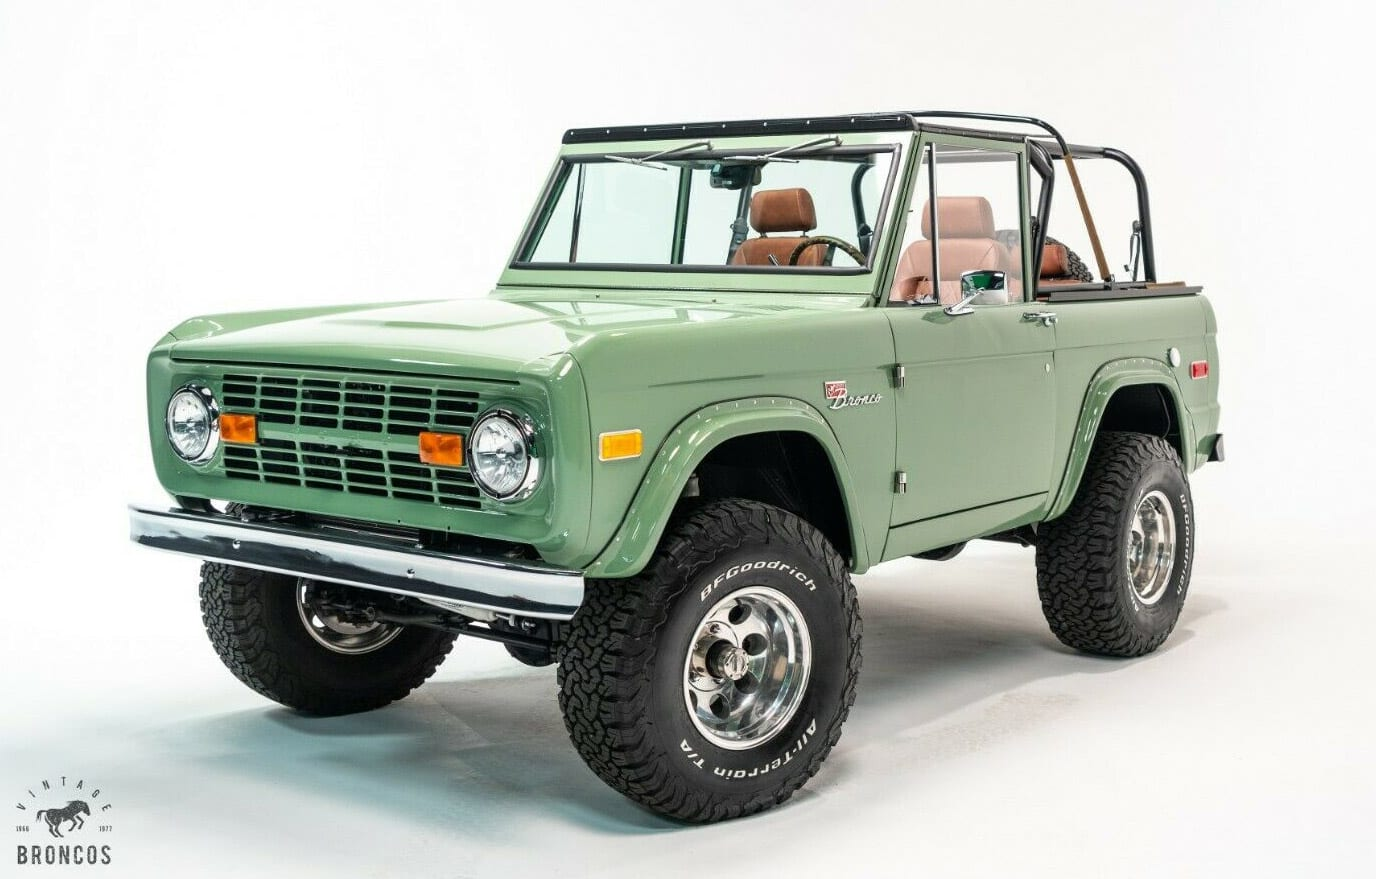 1974 Ford Bronco with all new parts